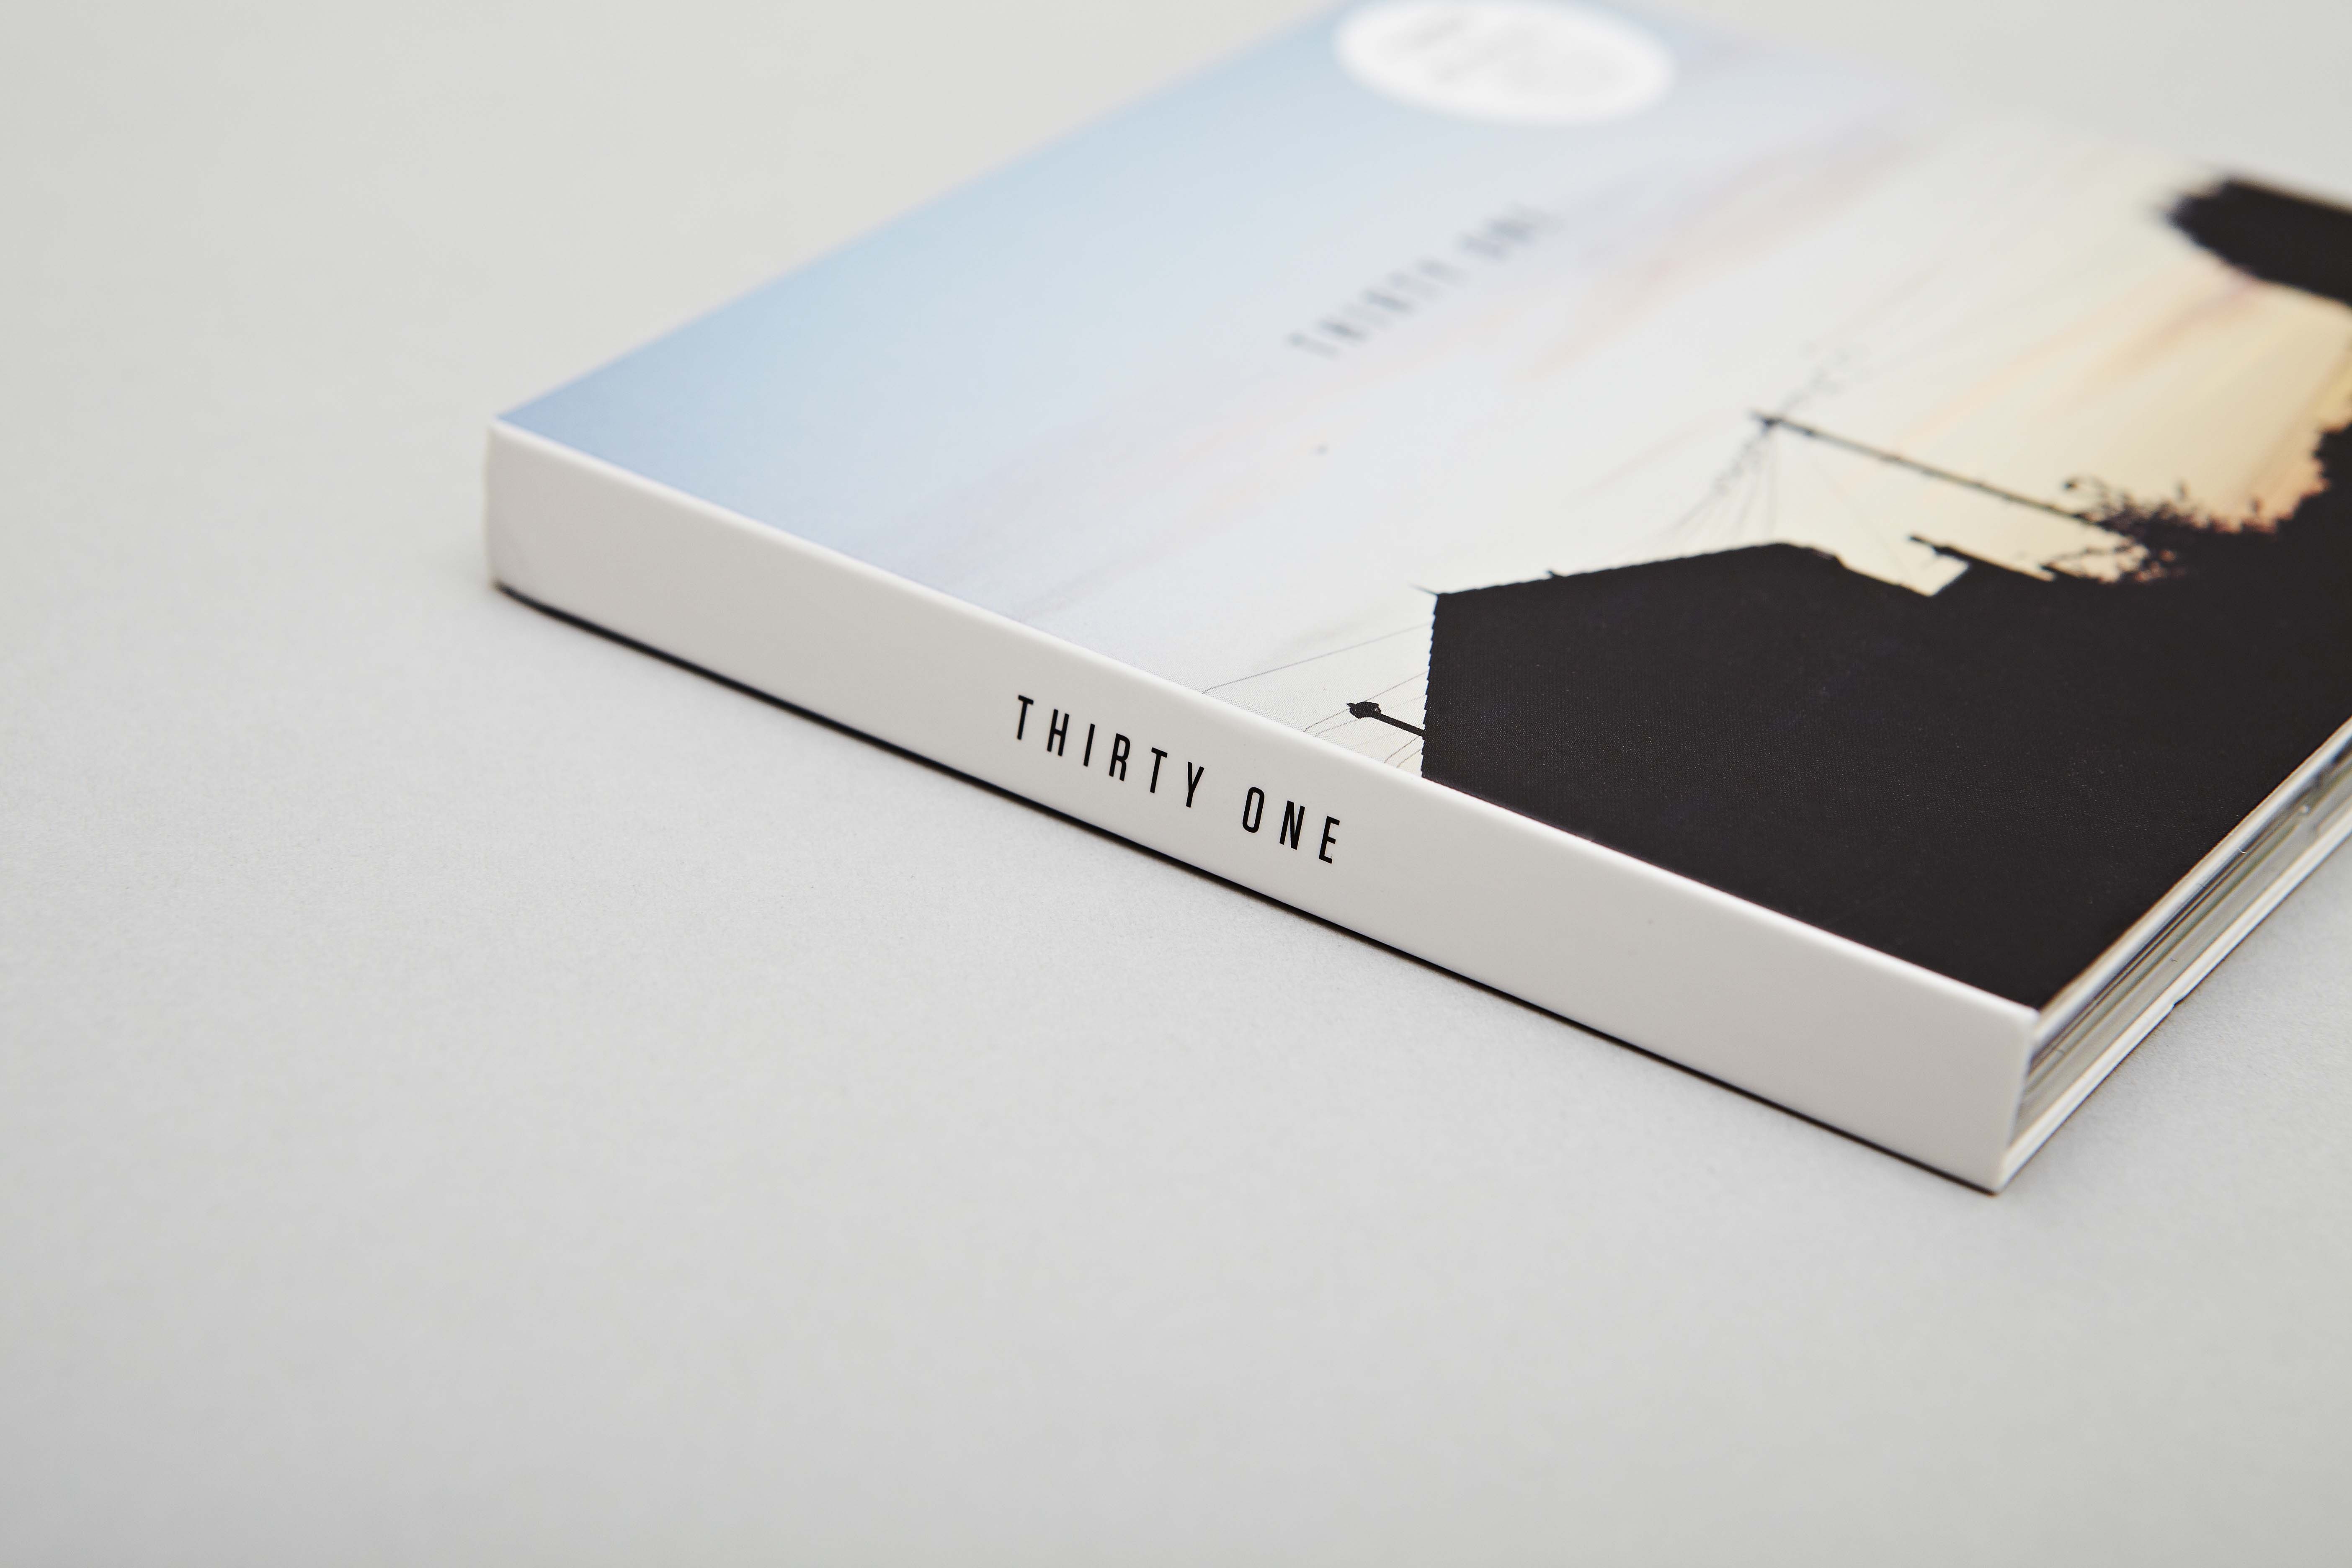 Thirty One, designed by Love with Peter Saville